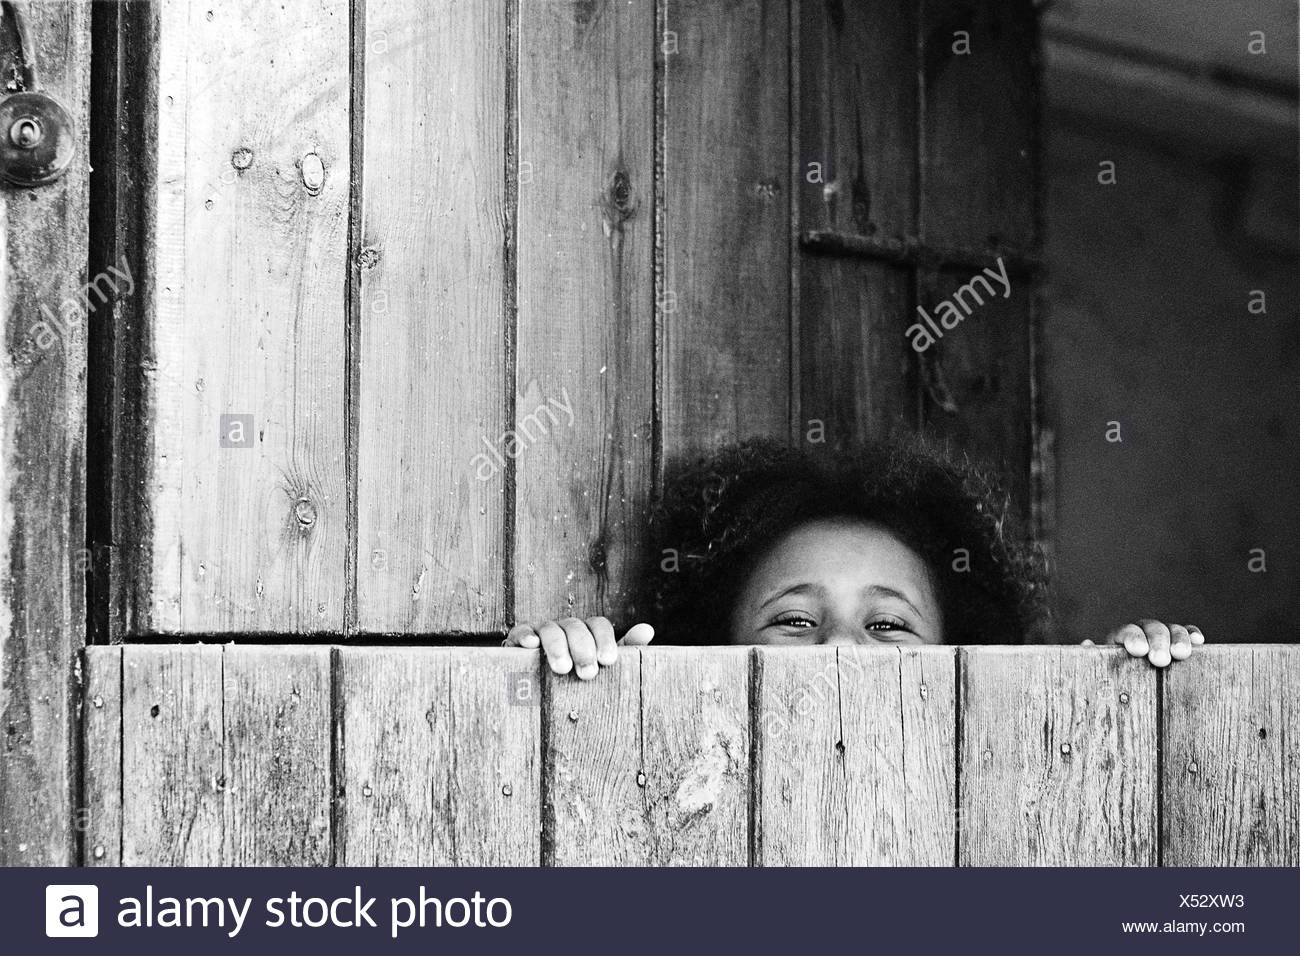 Girl peeking over the edge of a stable door - Stock Image